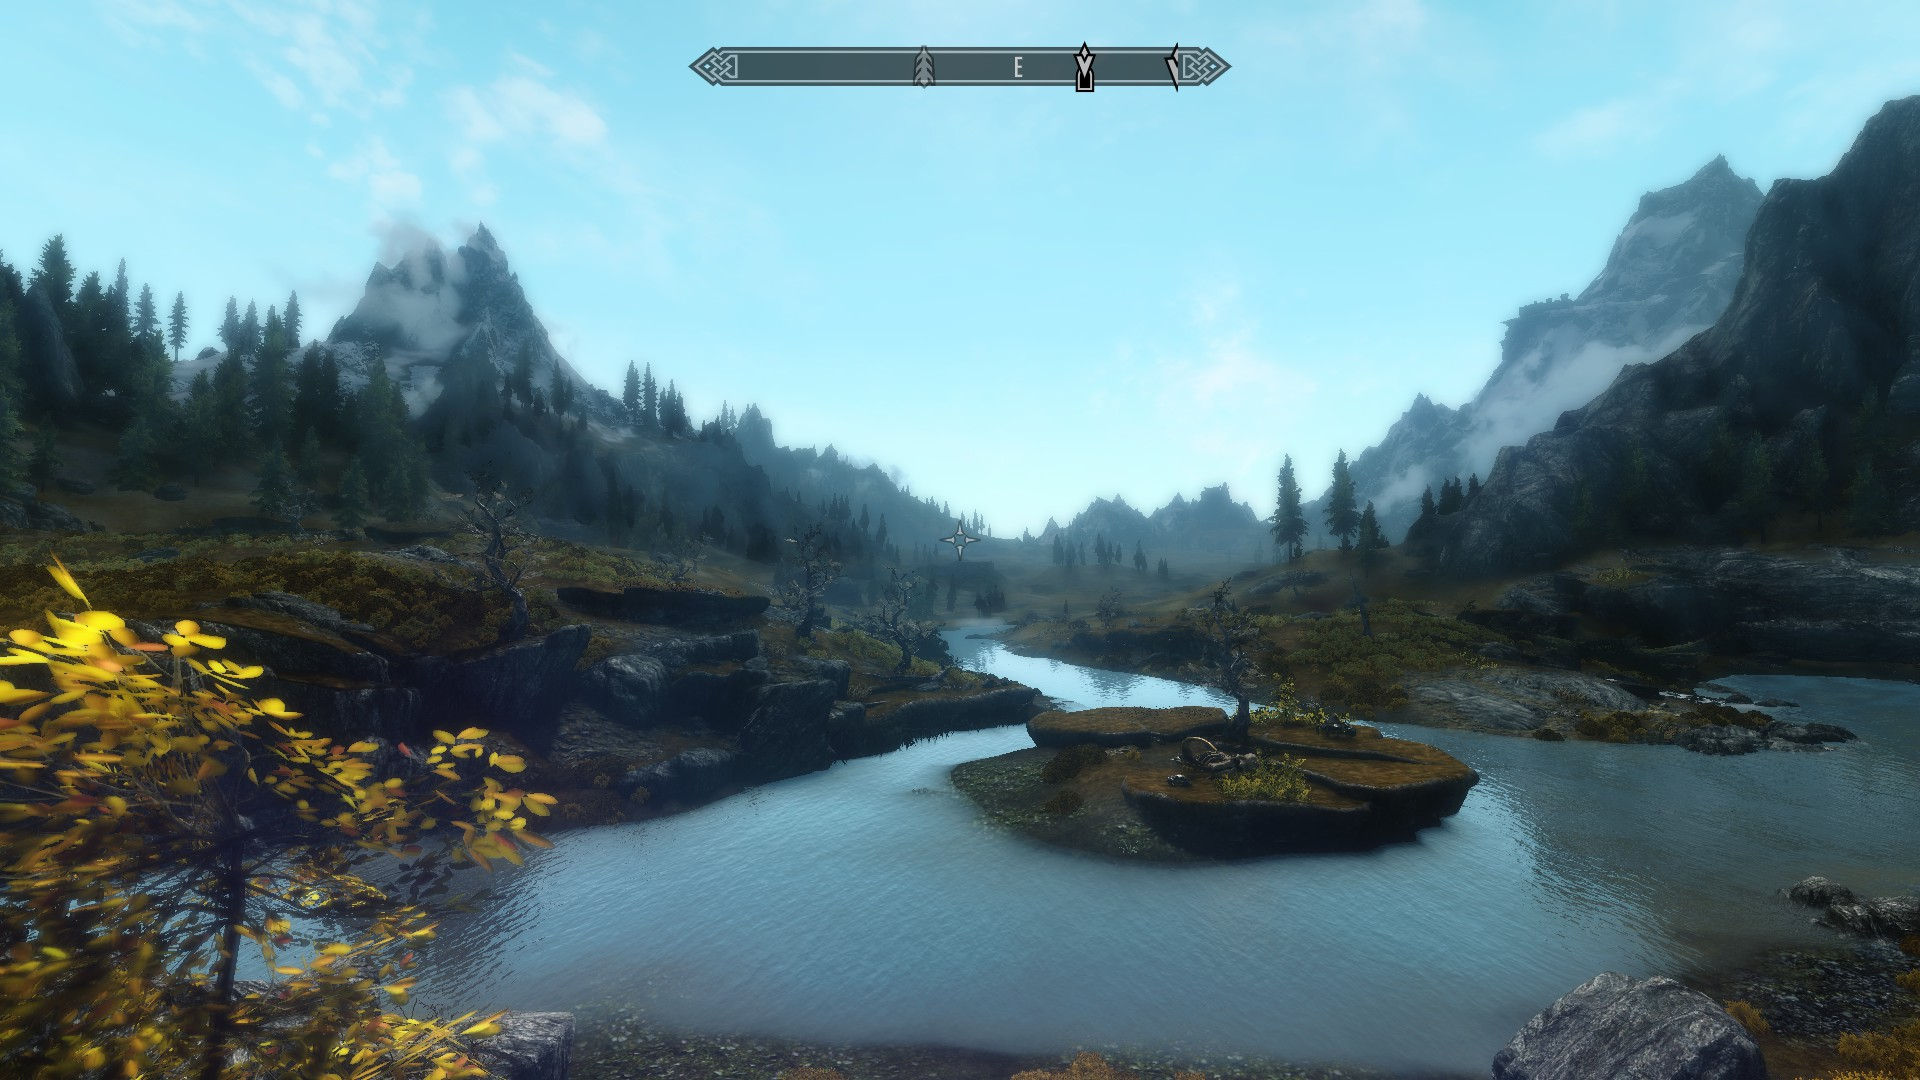 skyrim sweetfx and enb at Skyrim Nexus - mods and community